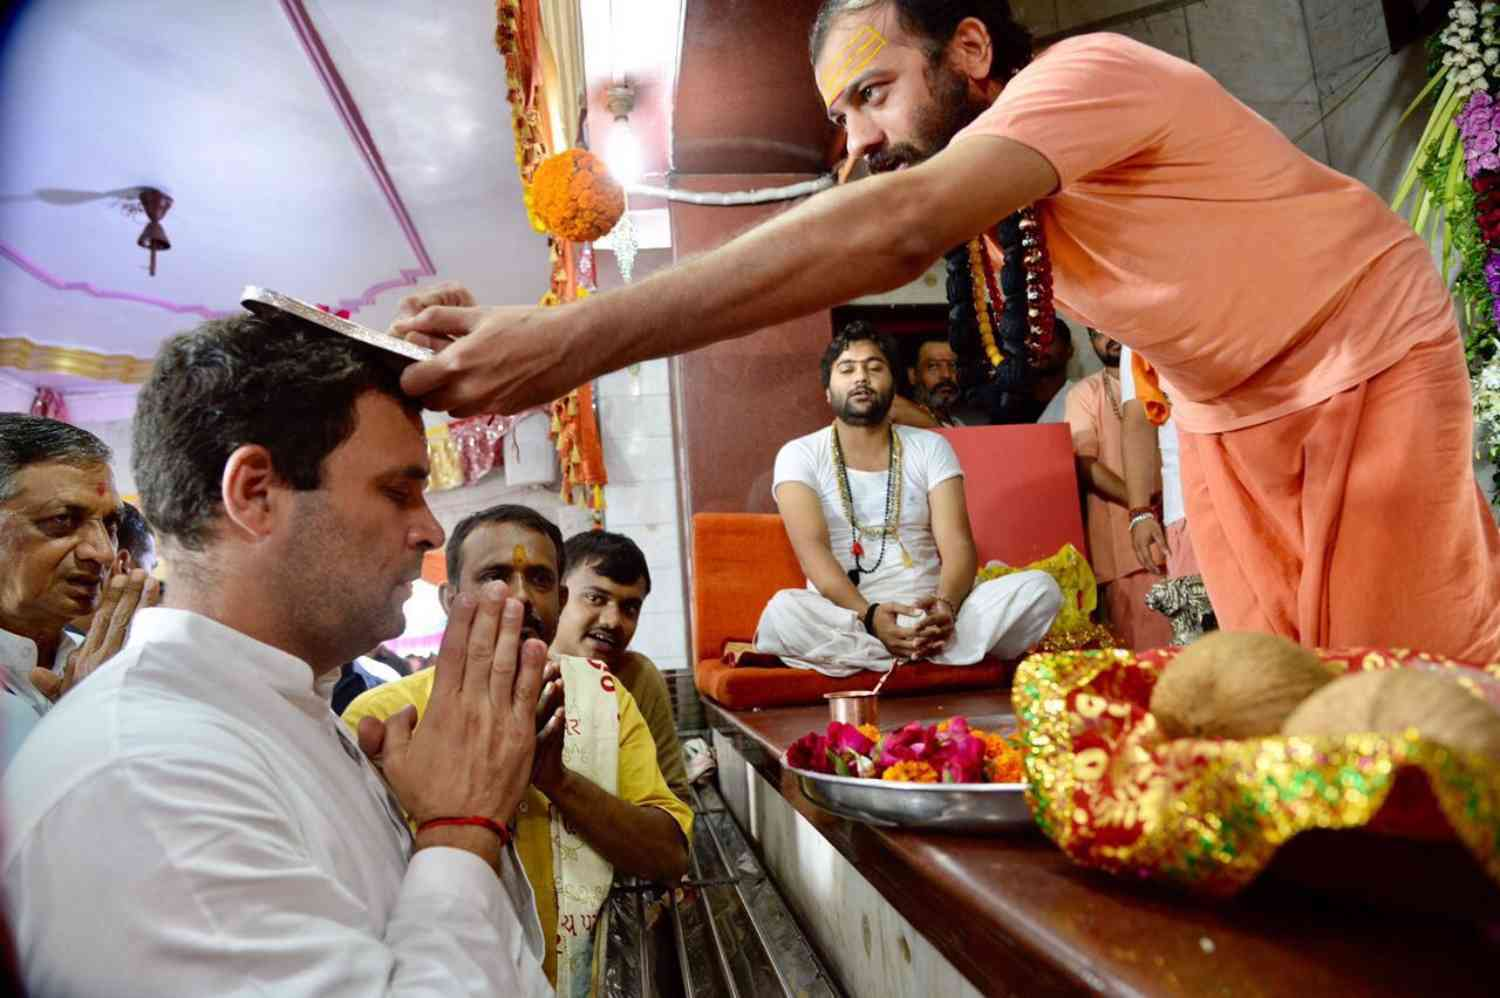 Rahul Gandhi's temple visits have segued into his party appropriating some of the defining symbols of Hindutva politics. (Credit: Indian National Congress)